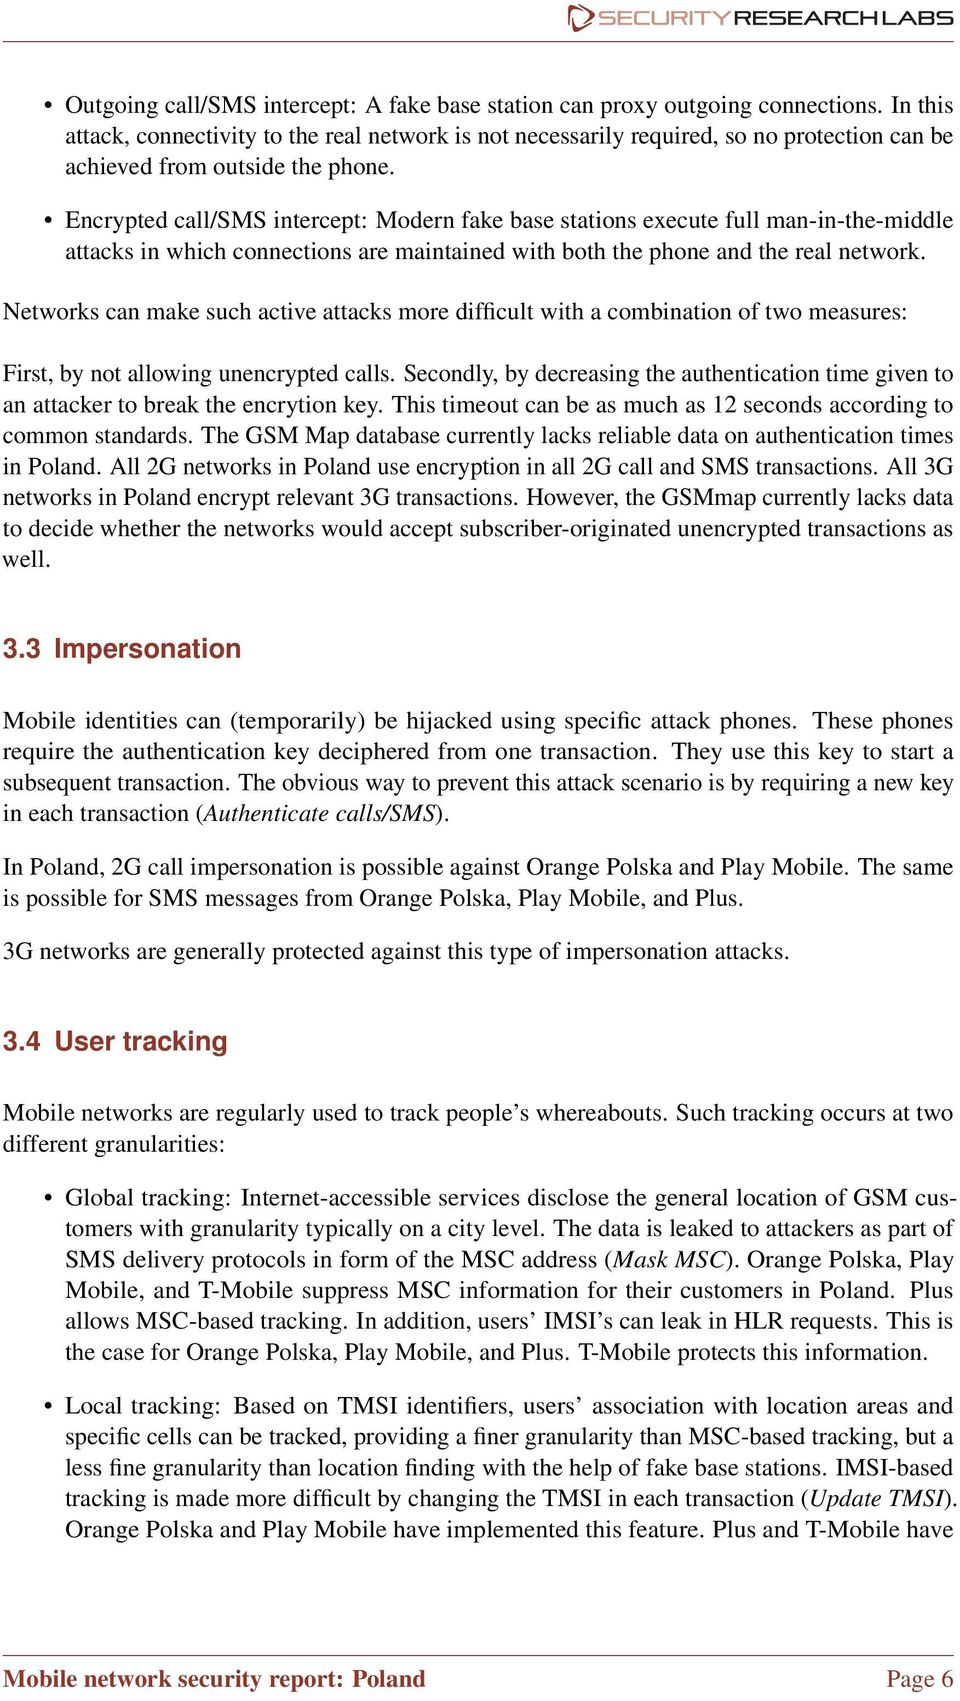 Encrypted call/sms intercept: Modern fake base stations execute full man-in-the-middle attacks in which connections are maintained with both the phone and the real network.